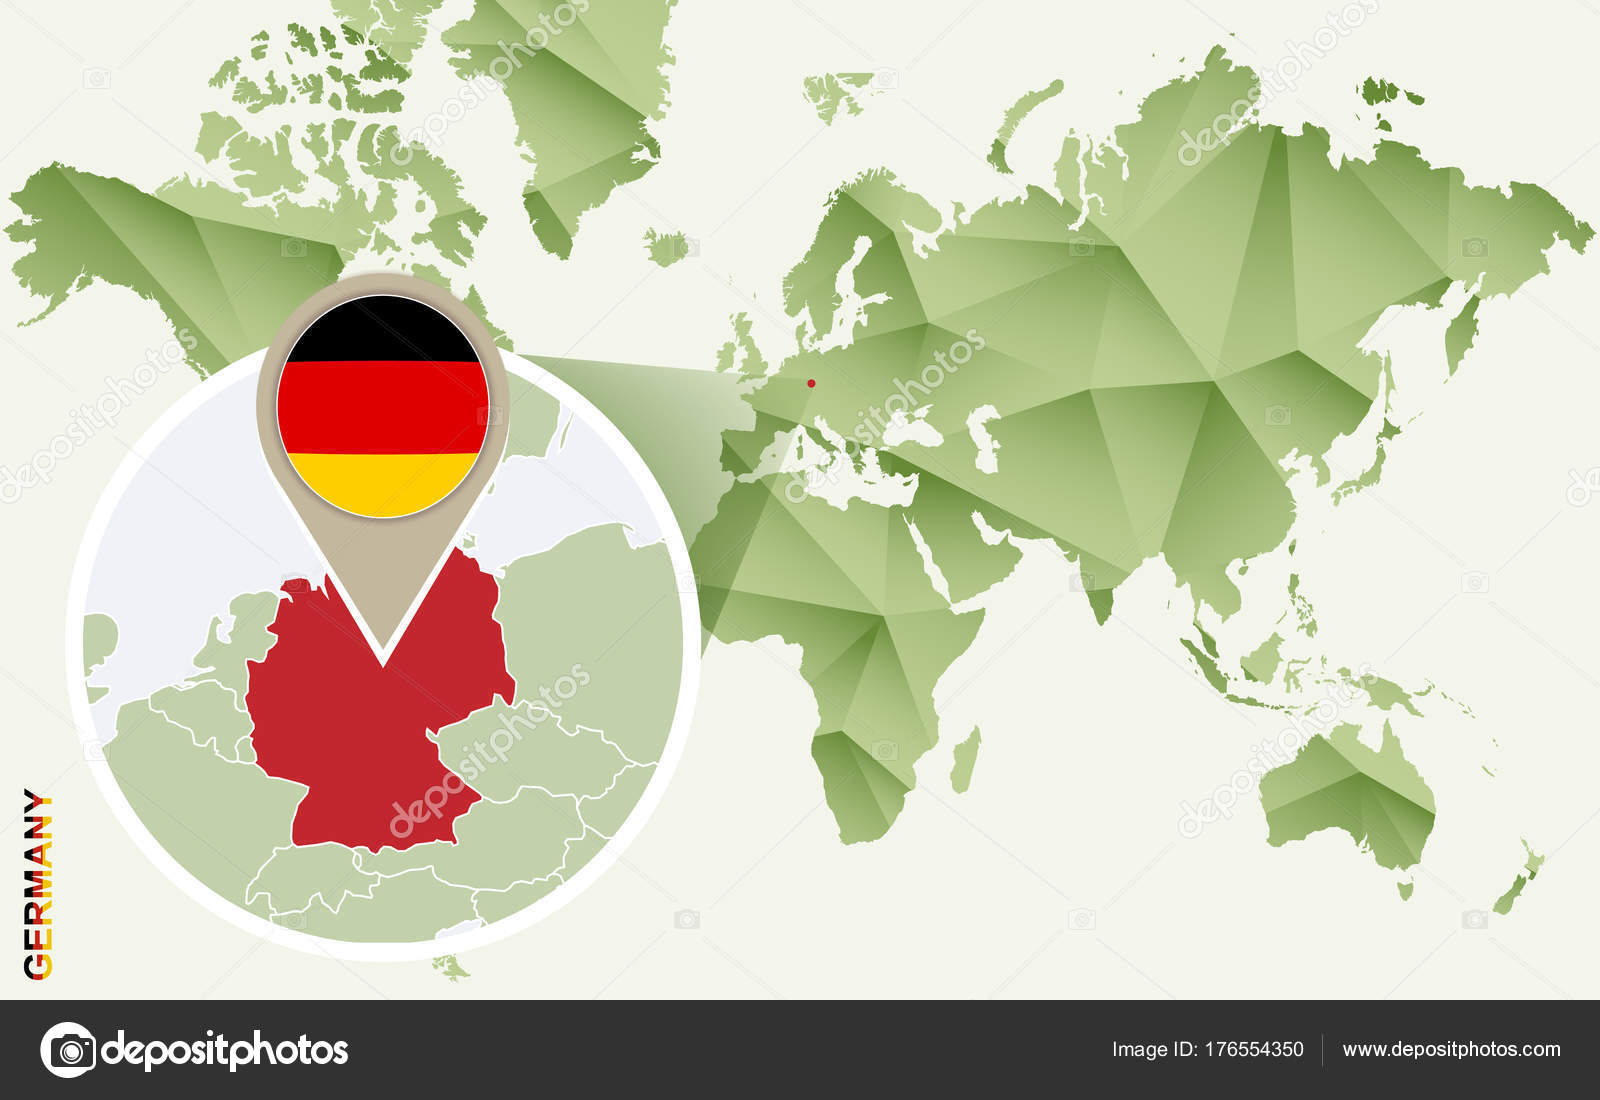 Infographic for Germany, detailed map of Germany with flag ...